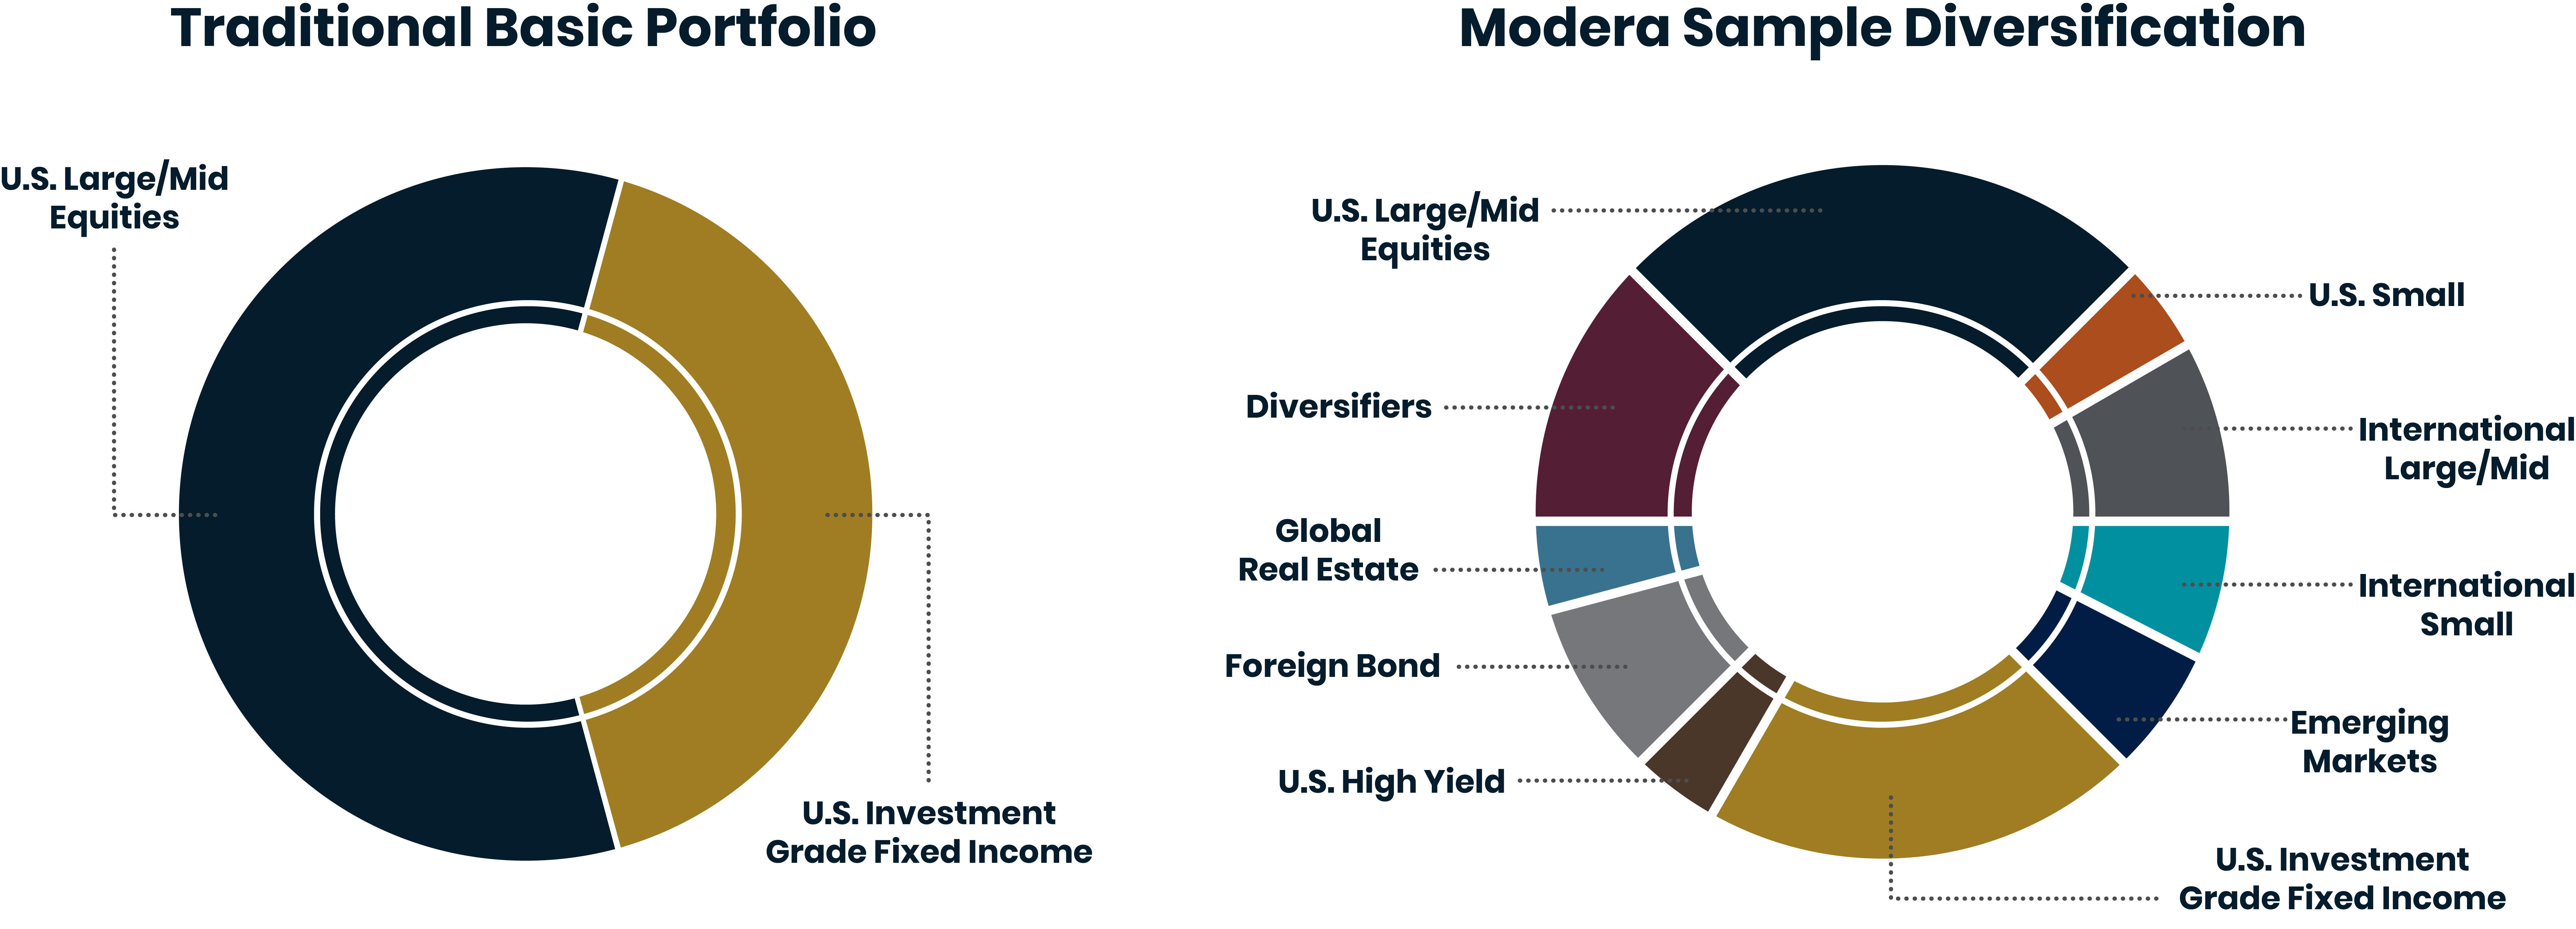 Two pie charts side by side. Left side: Traditional Basic Portfolio shows U.S. Large/Mid Equities(60%) and U.S. Investment Grade Fixed Income(40%). Right Side: Modera Sample Diversification shows U.S. Large/Mid Equities(25%), Diversifiers(13%), Global Real Estate(4%), Foreign Bond(7%), U.S. High Yield(5%), U.S. Investment Grade Fixed Income(19%), Emerging Markets(6%), International Small(6%), International Large/Mid(9%), U.S. Small (6%)